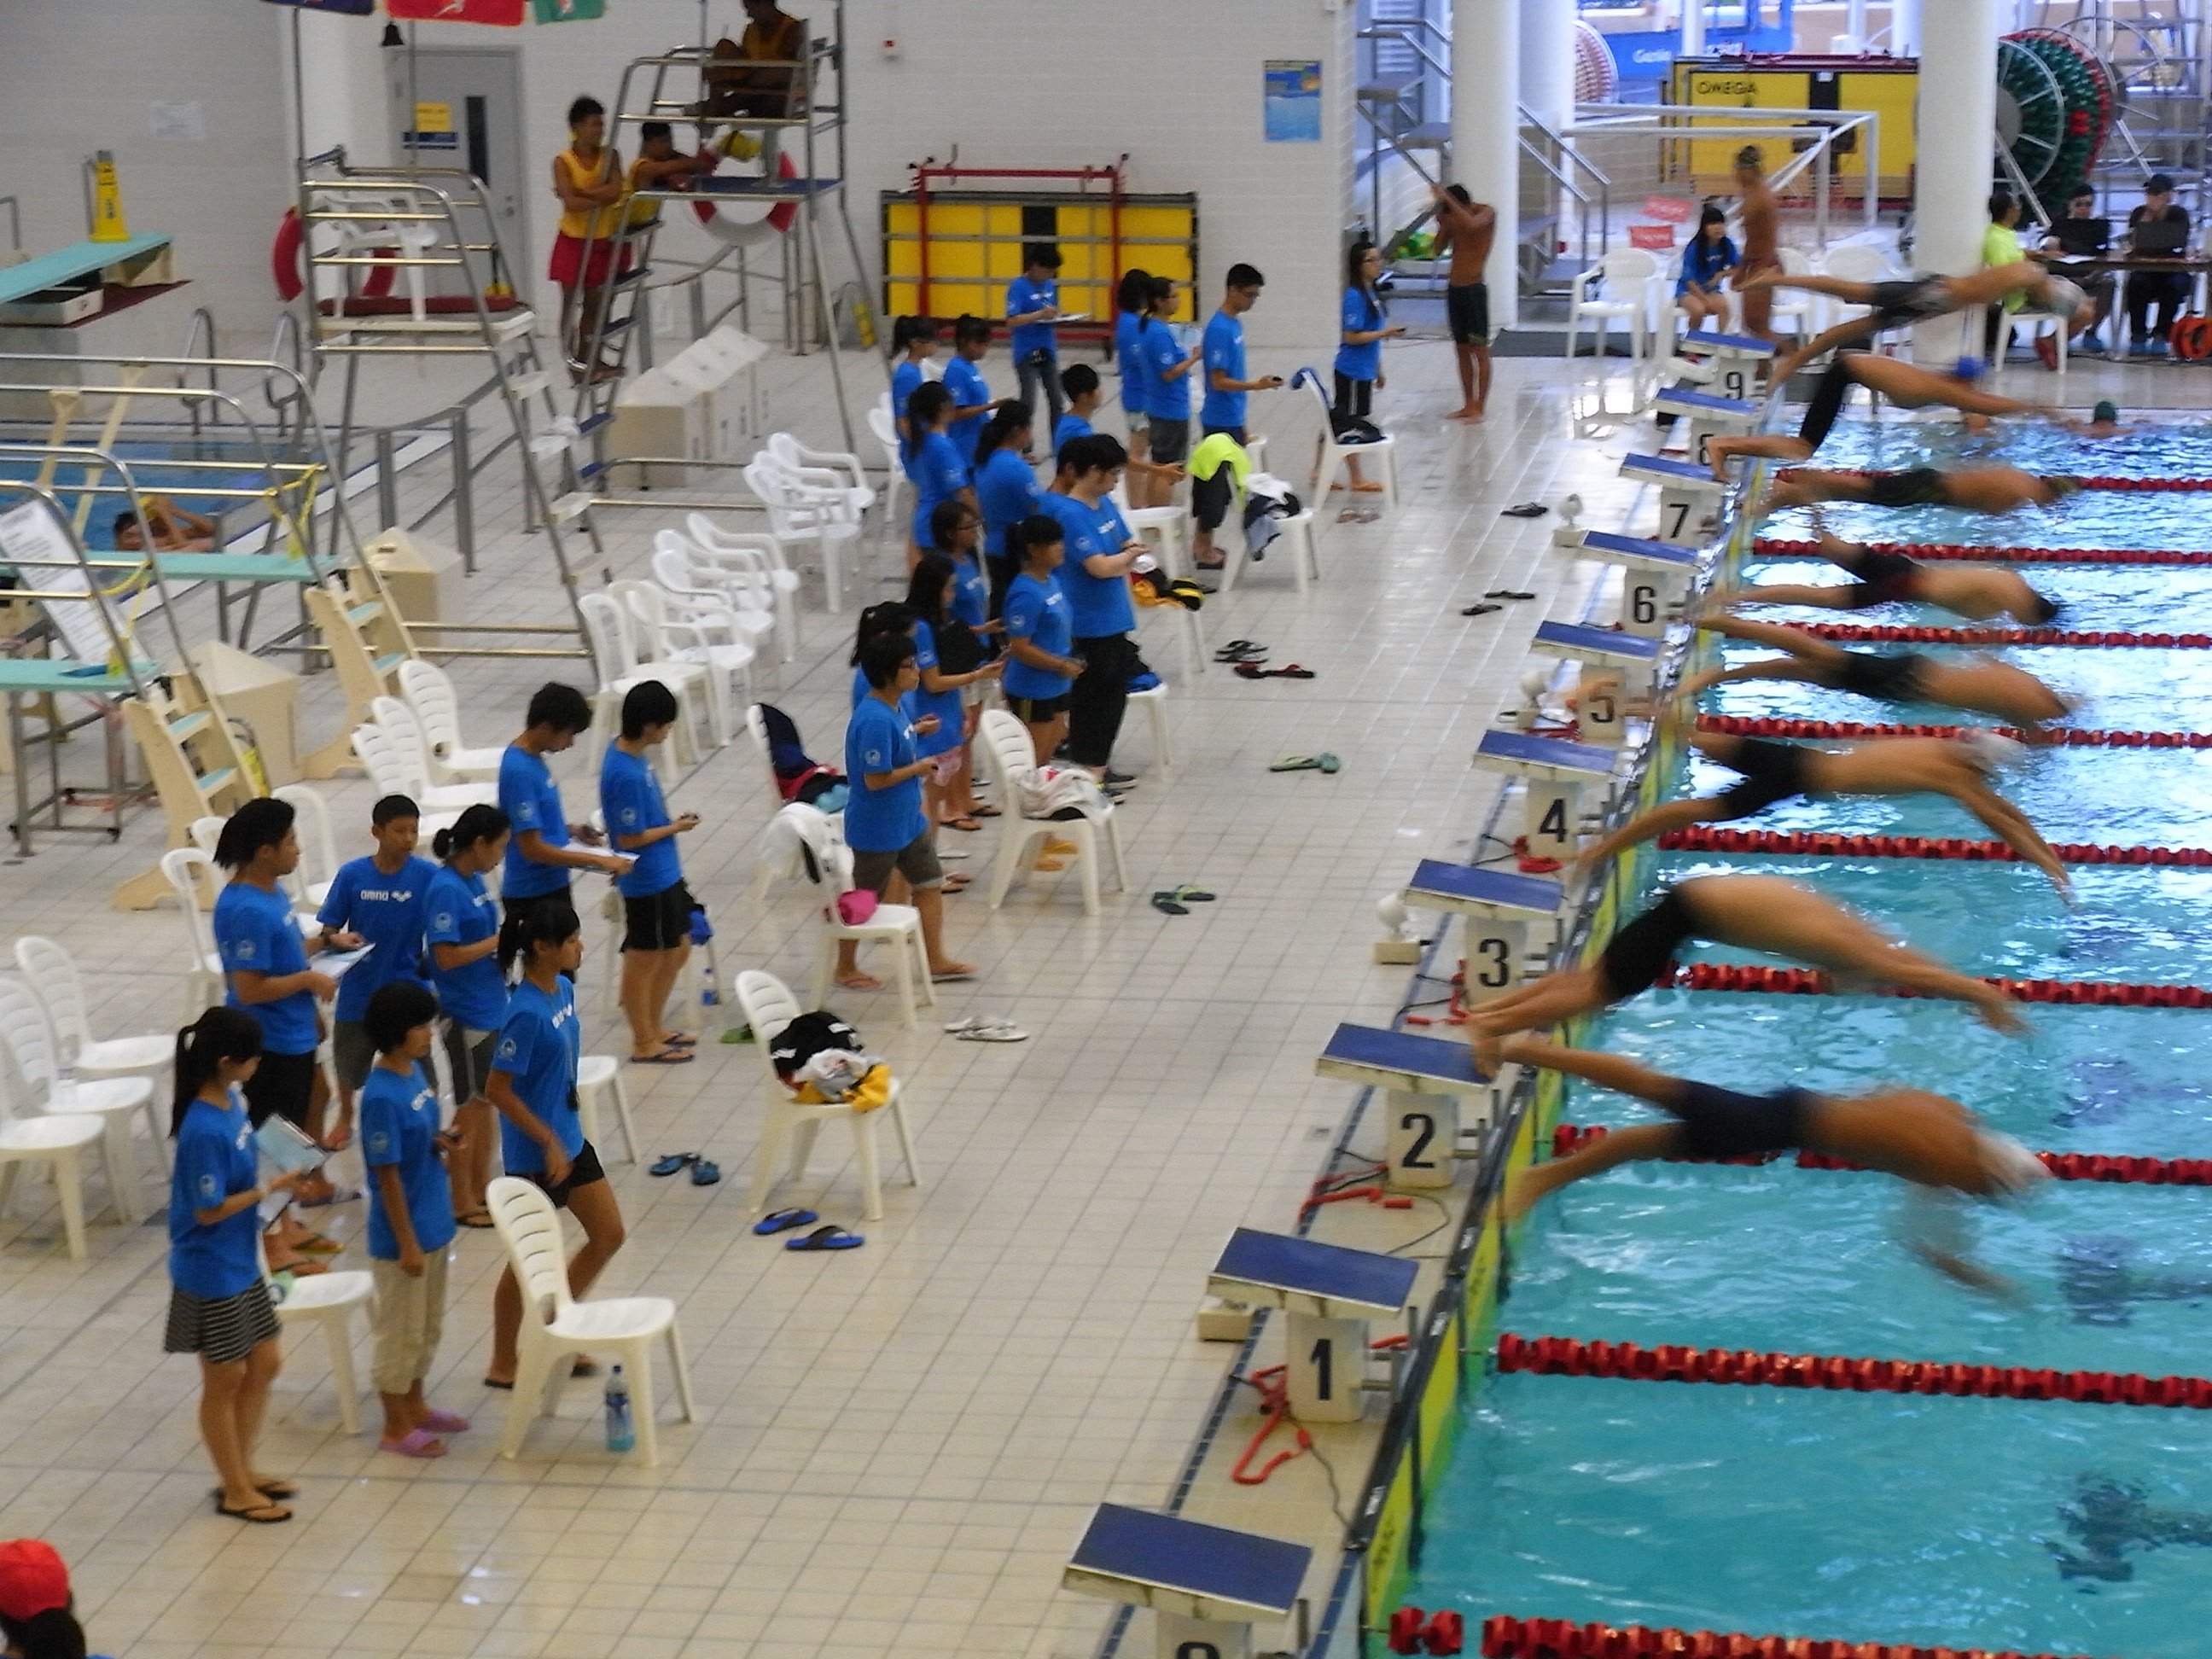 File Hk Tst Kln Park Swimming Pool C1 Indoor Competition July 2012 Jpg Wikimedia Commons